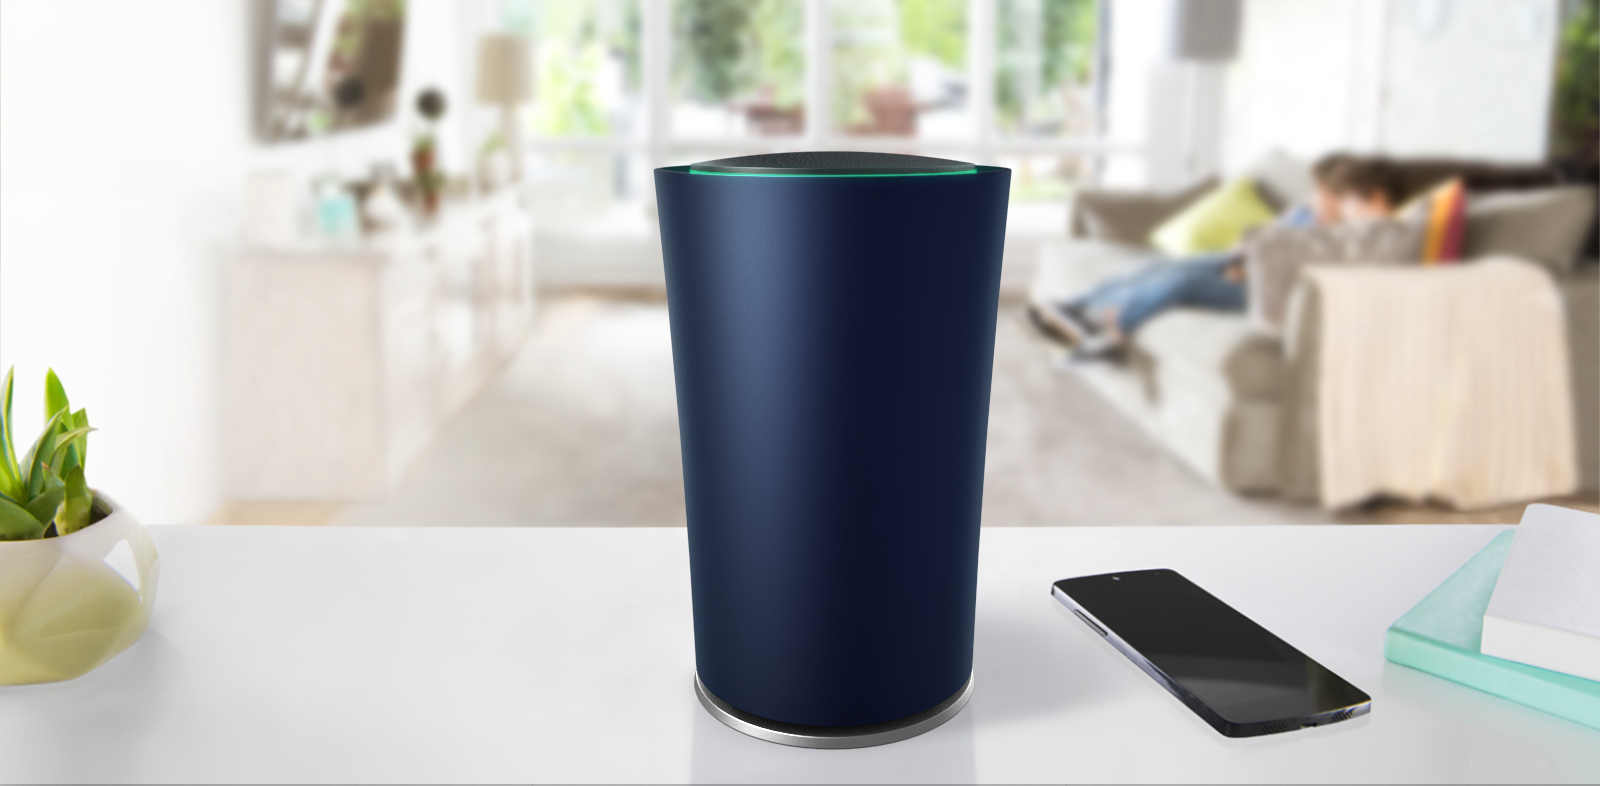 OnHub Google Wifi Router